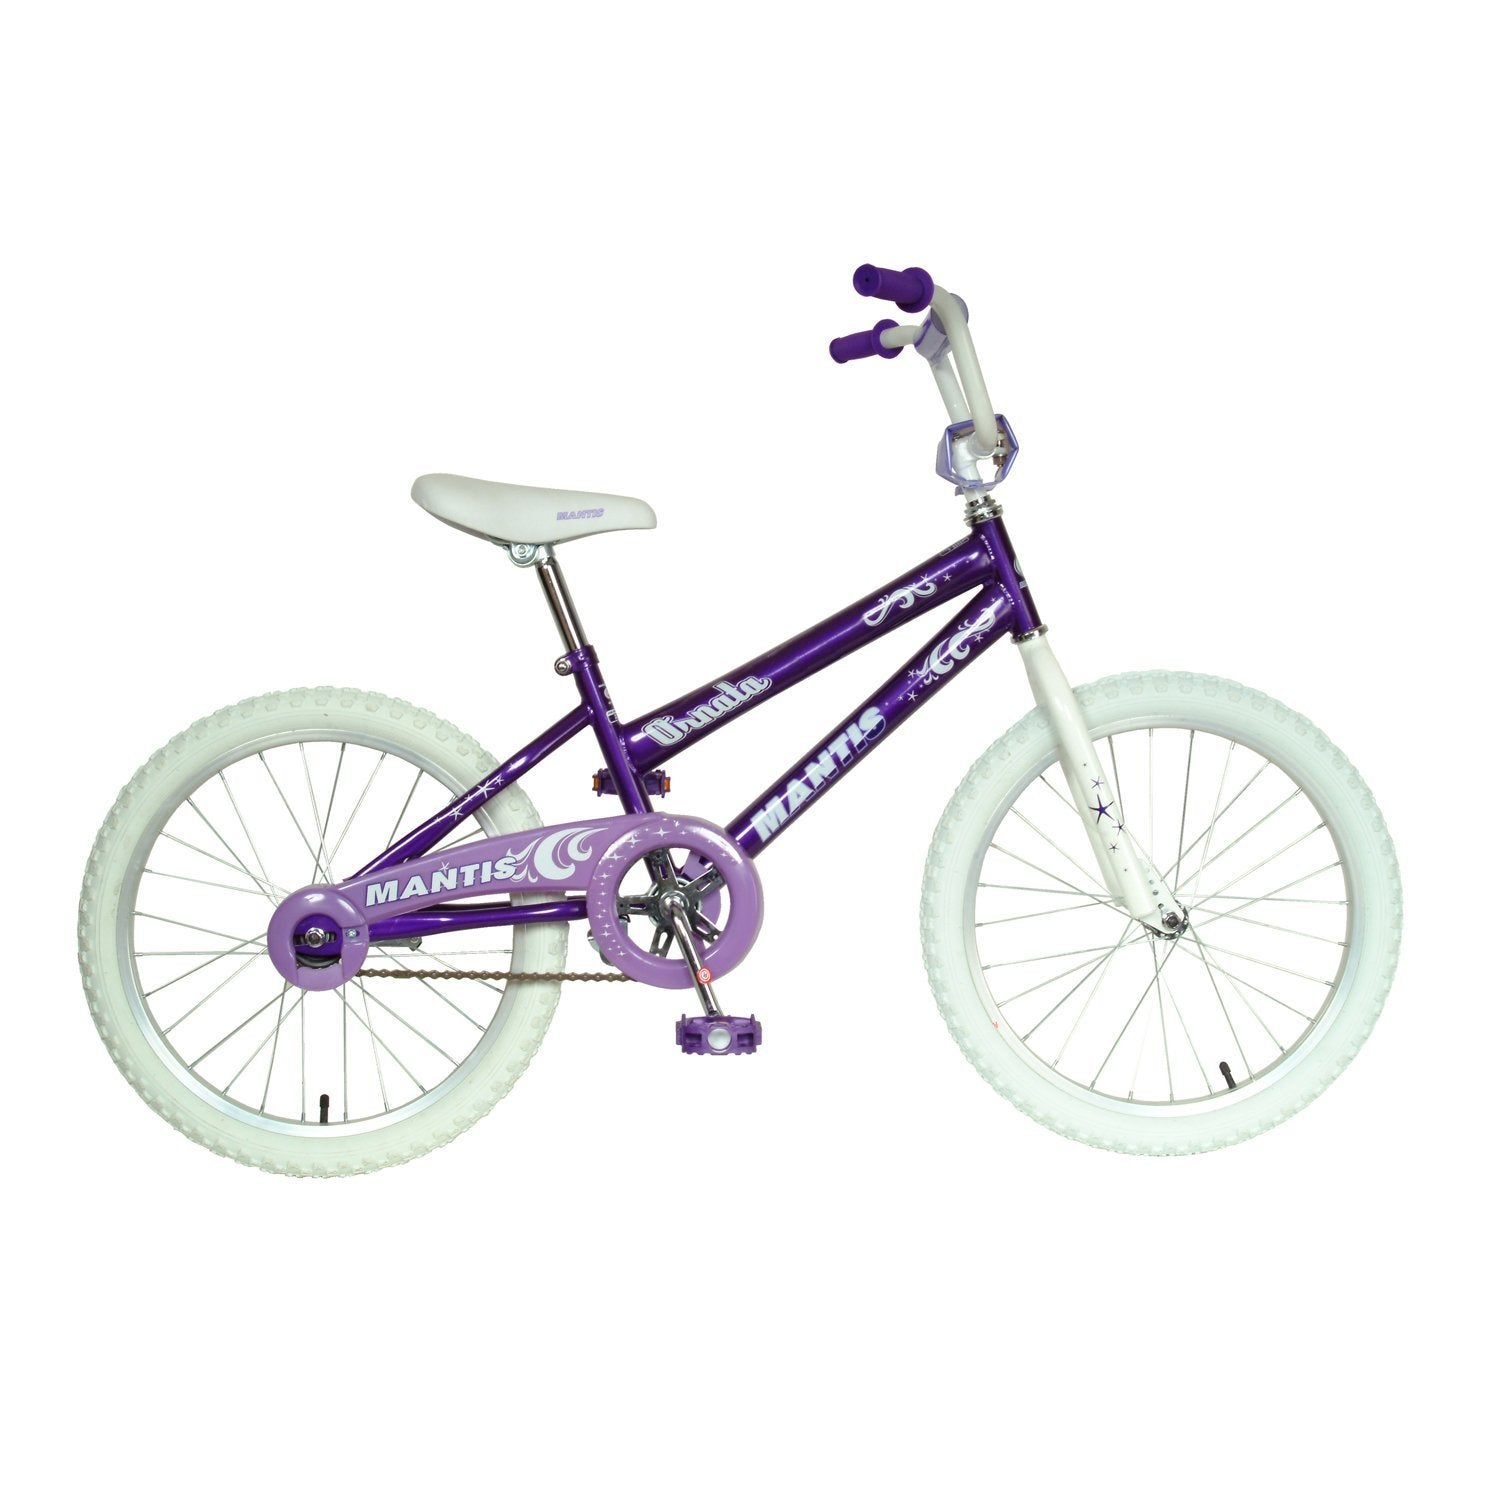 Mantis Ornata Single Speed 20-Inch Kids Bicycle - Kids Bicycle Ridetique.com